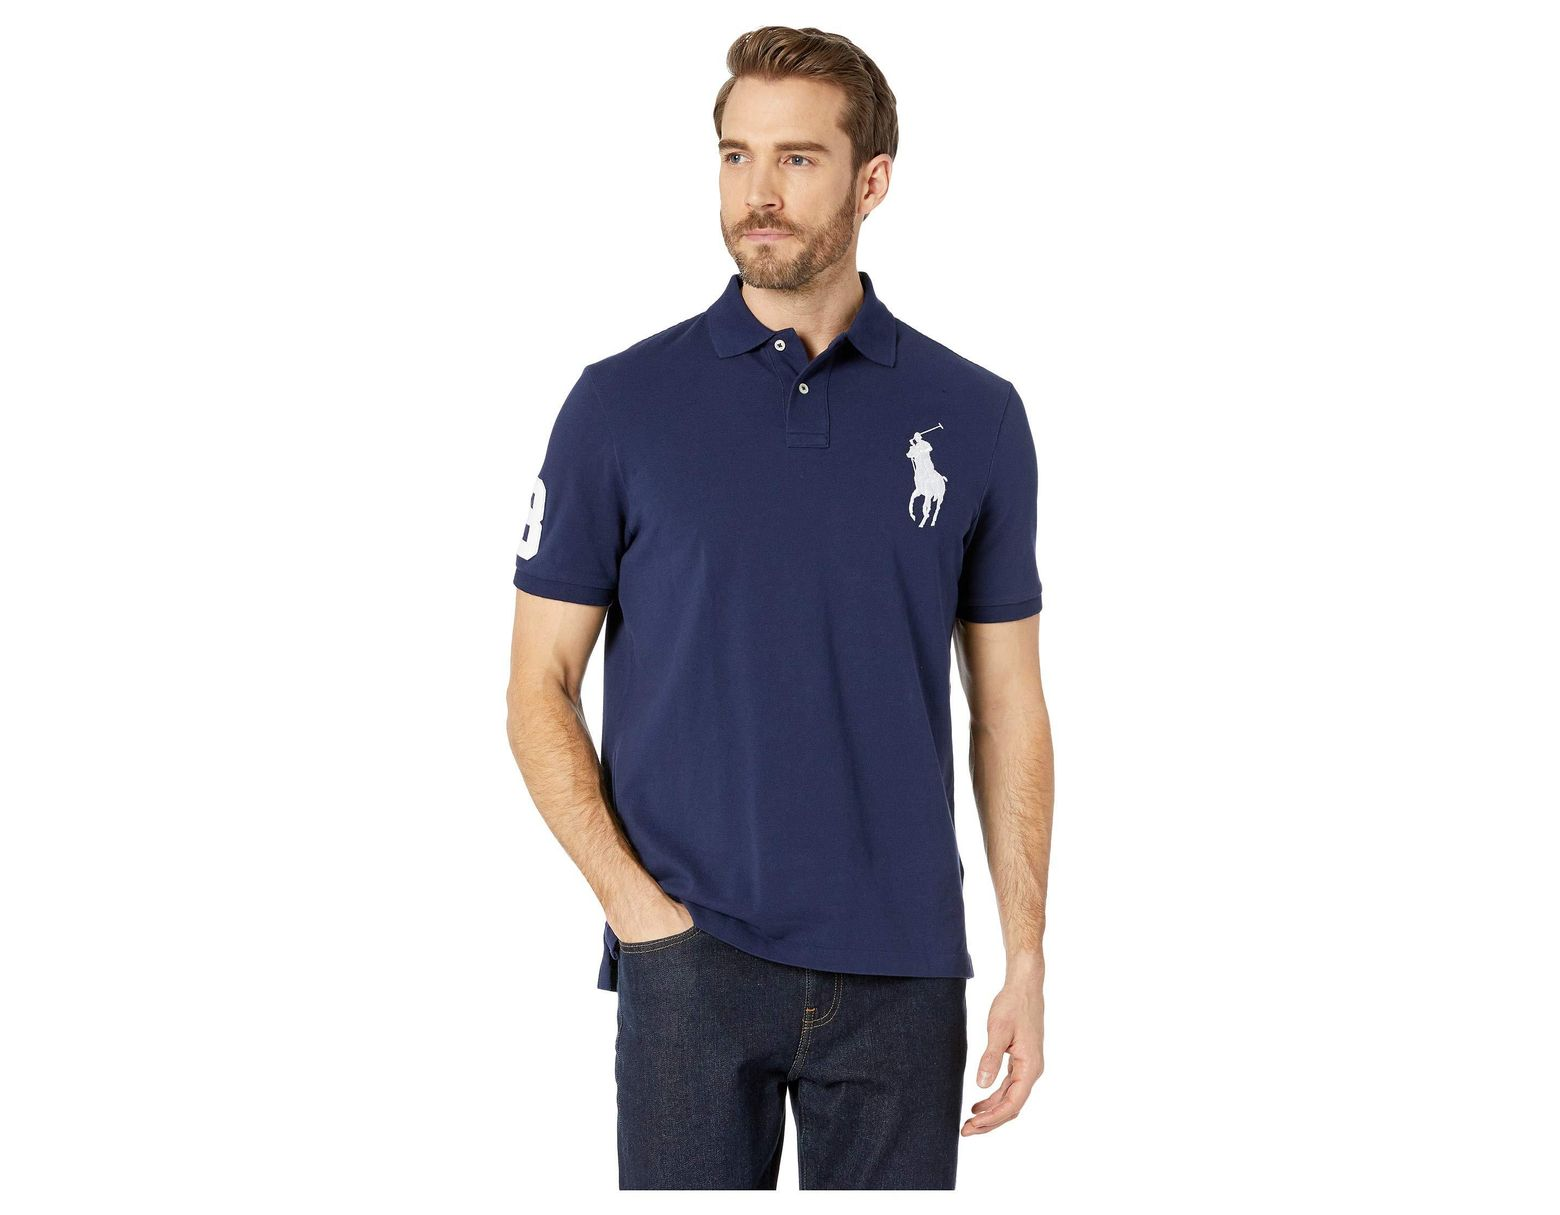 f073e033f49 Polo Ralph Lauren Basic Mesh Short Sleeve Big Pony Classic Fit Knit  (andover Heather) Men's Clothing in Blue for Men - Lyst